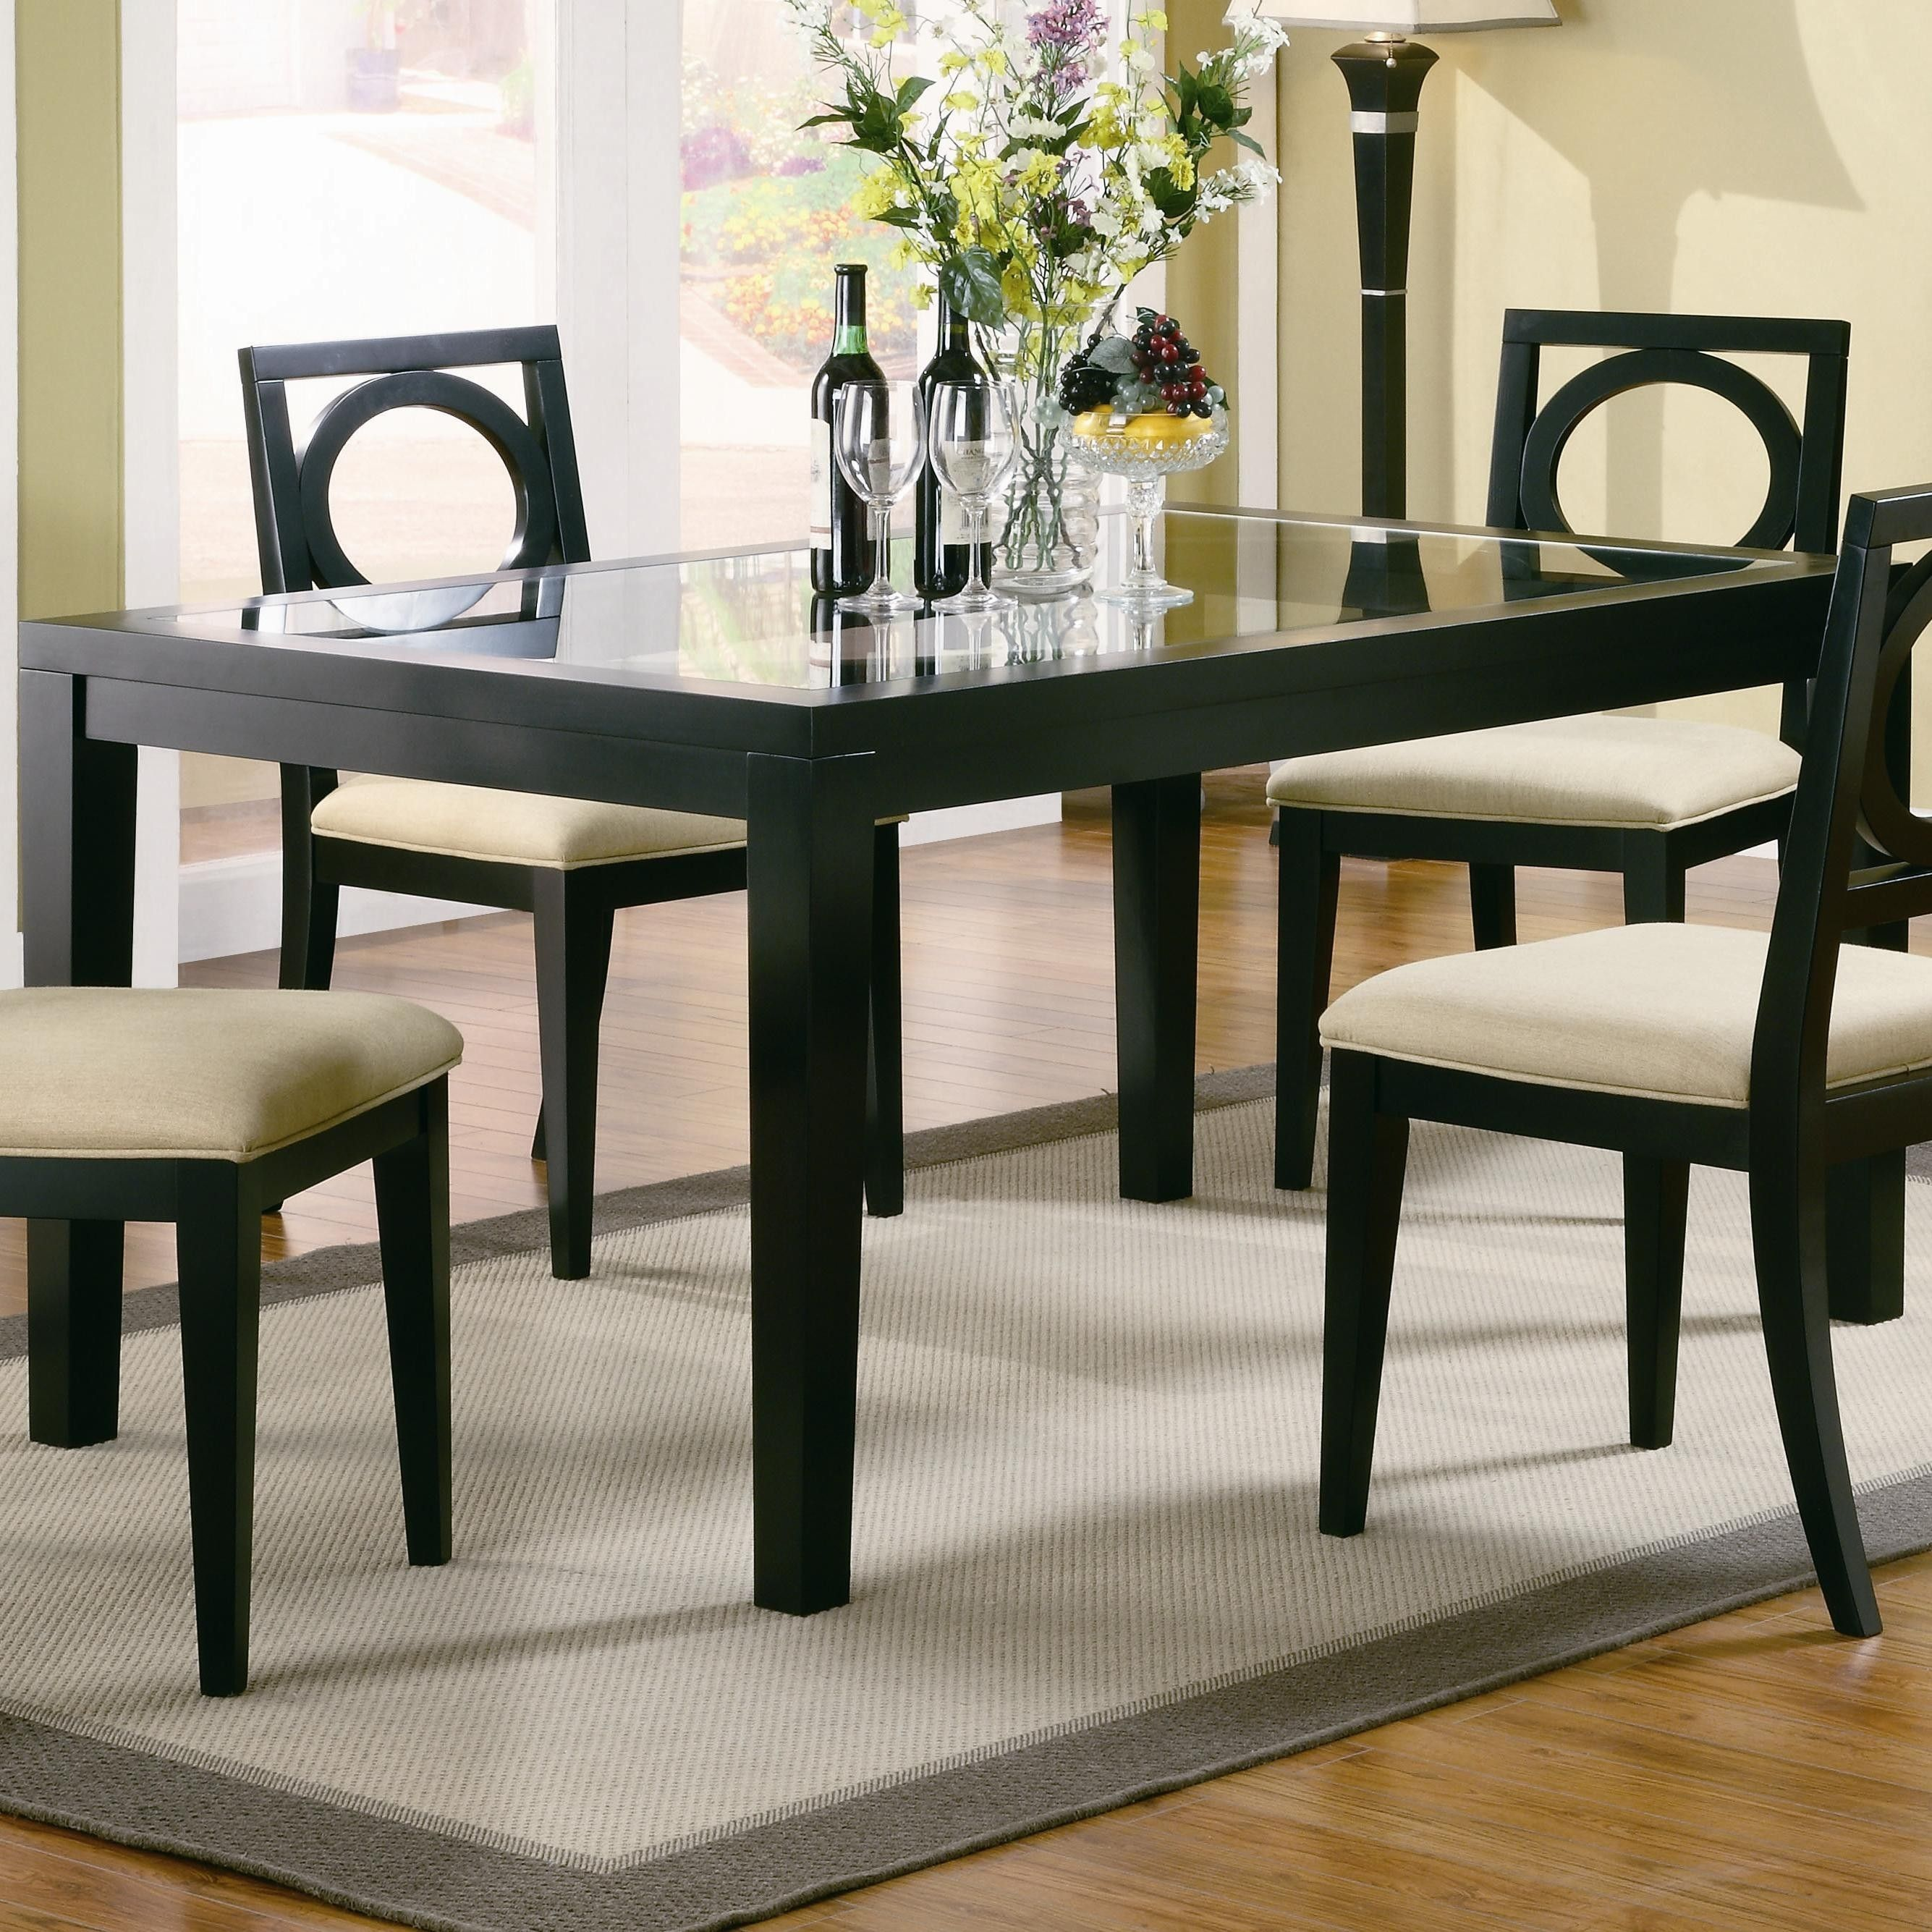 Exquisite Modern Glass Top Dining Table Designs With Rectangular